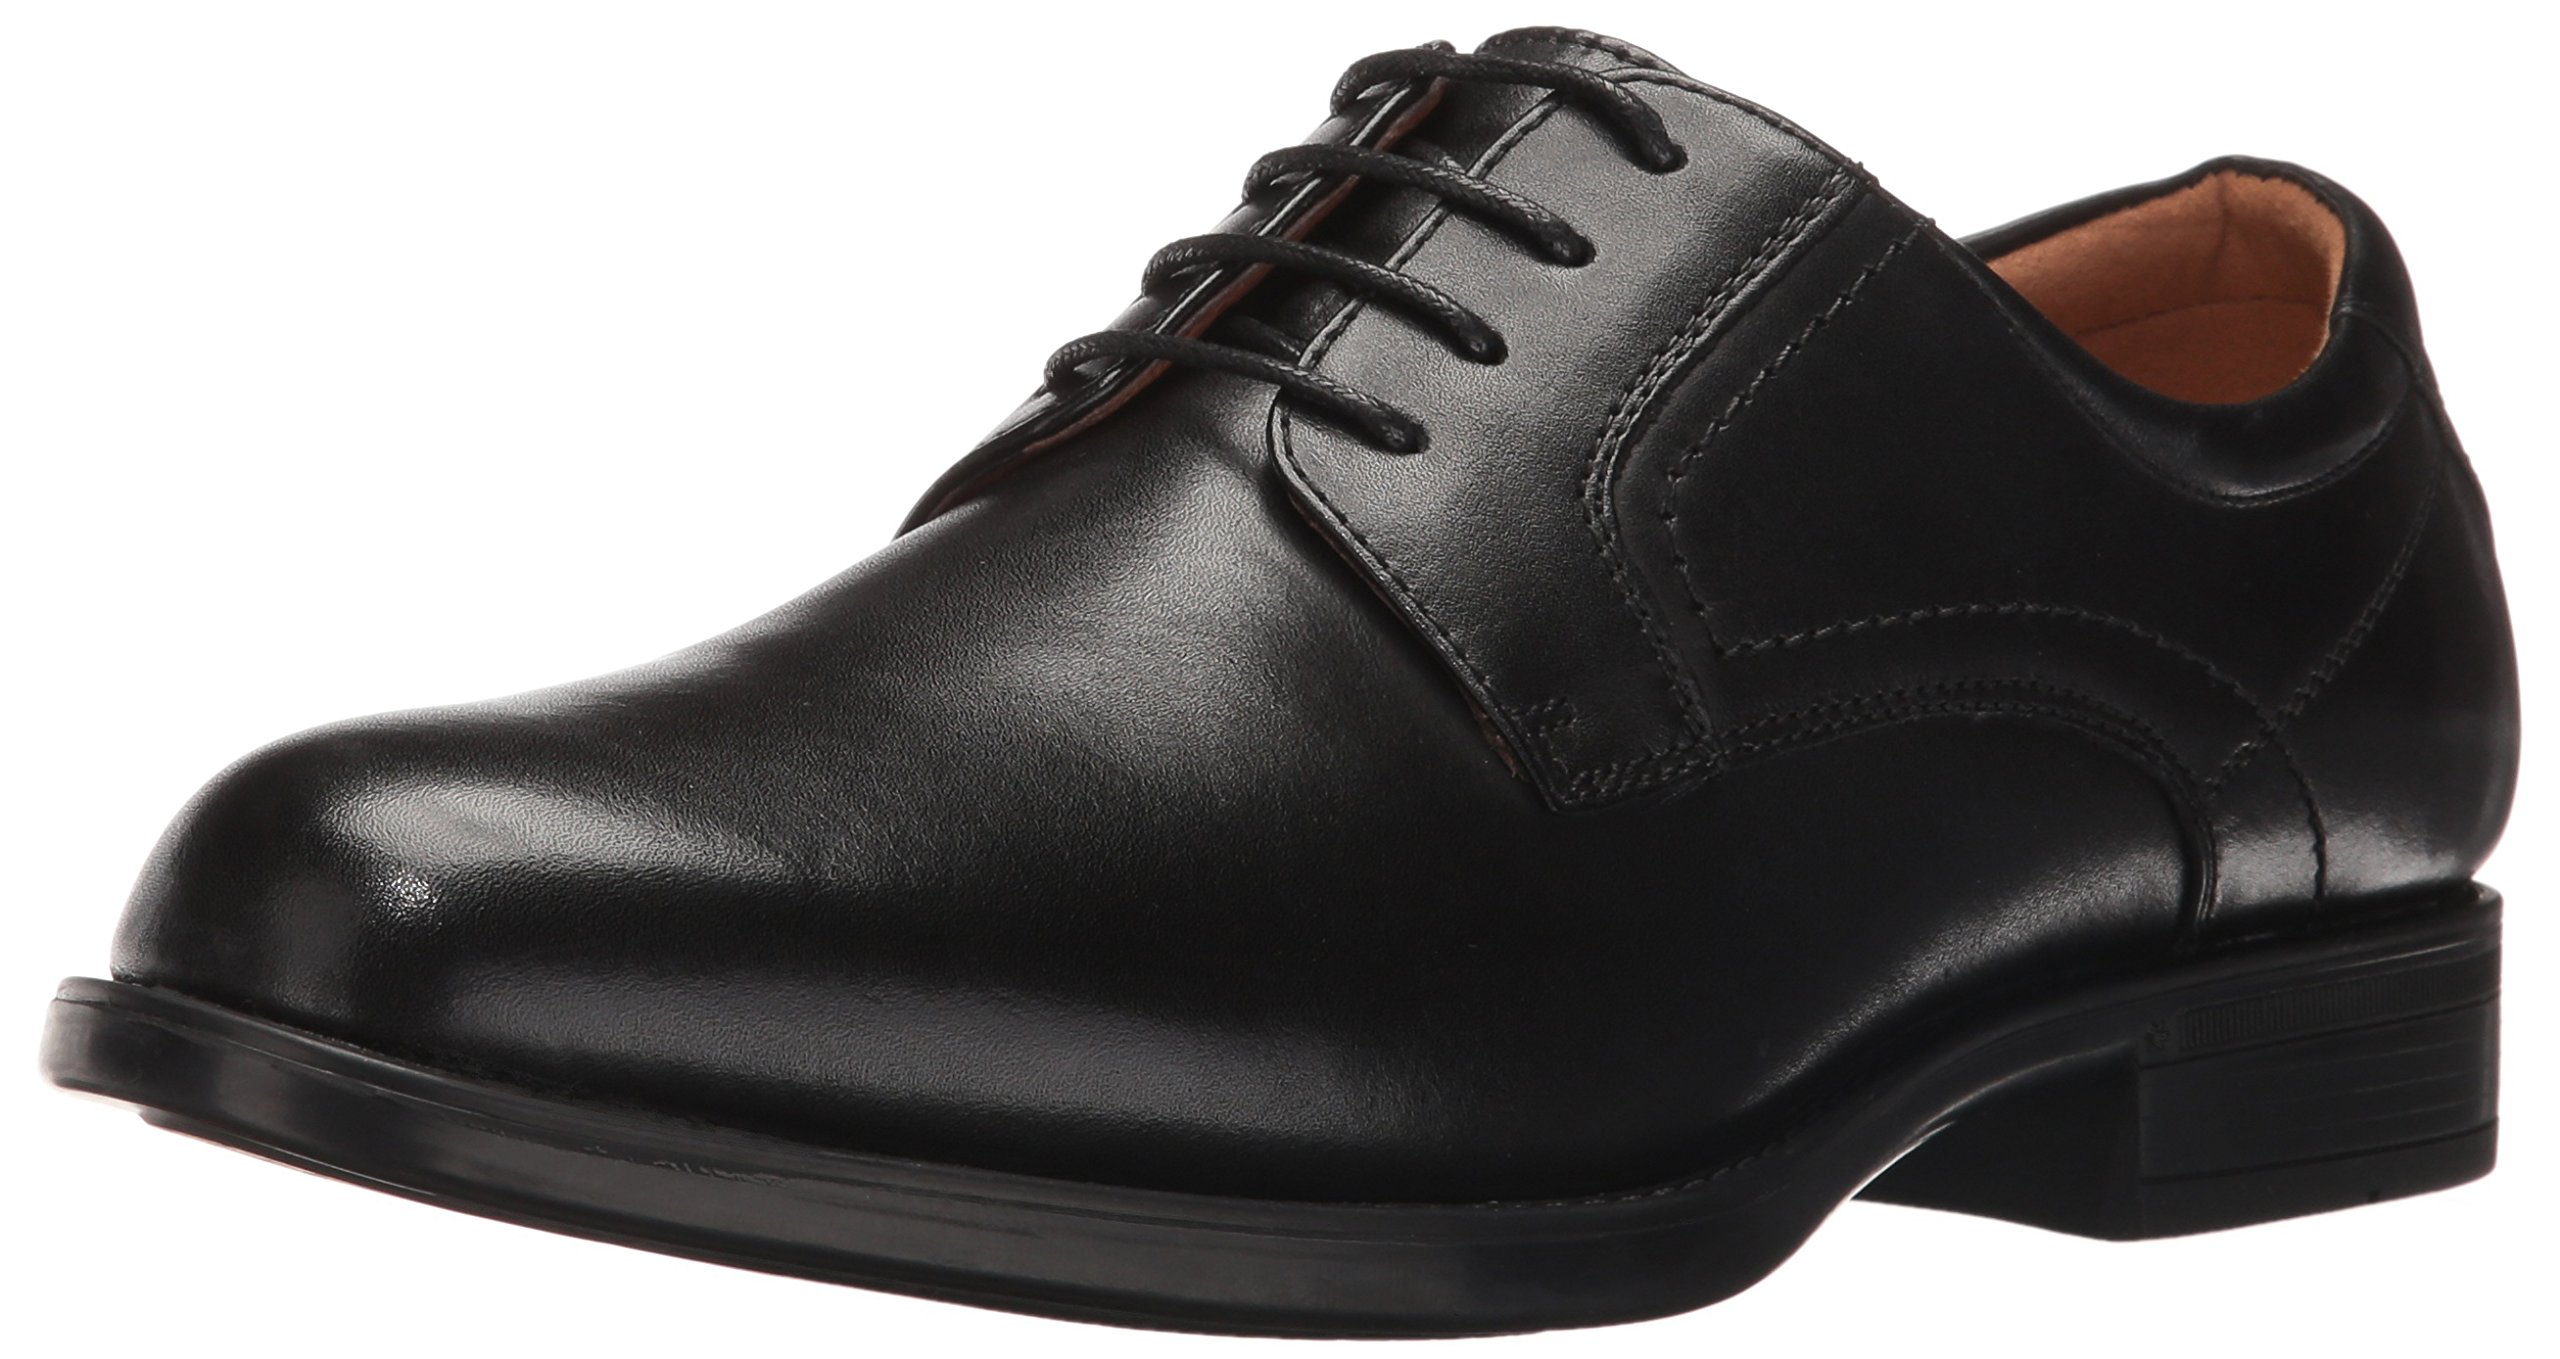 Florsheim Men's Medfield Plain Toe Oxford, Black, 9.5 D US by Florsheim